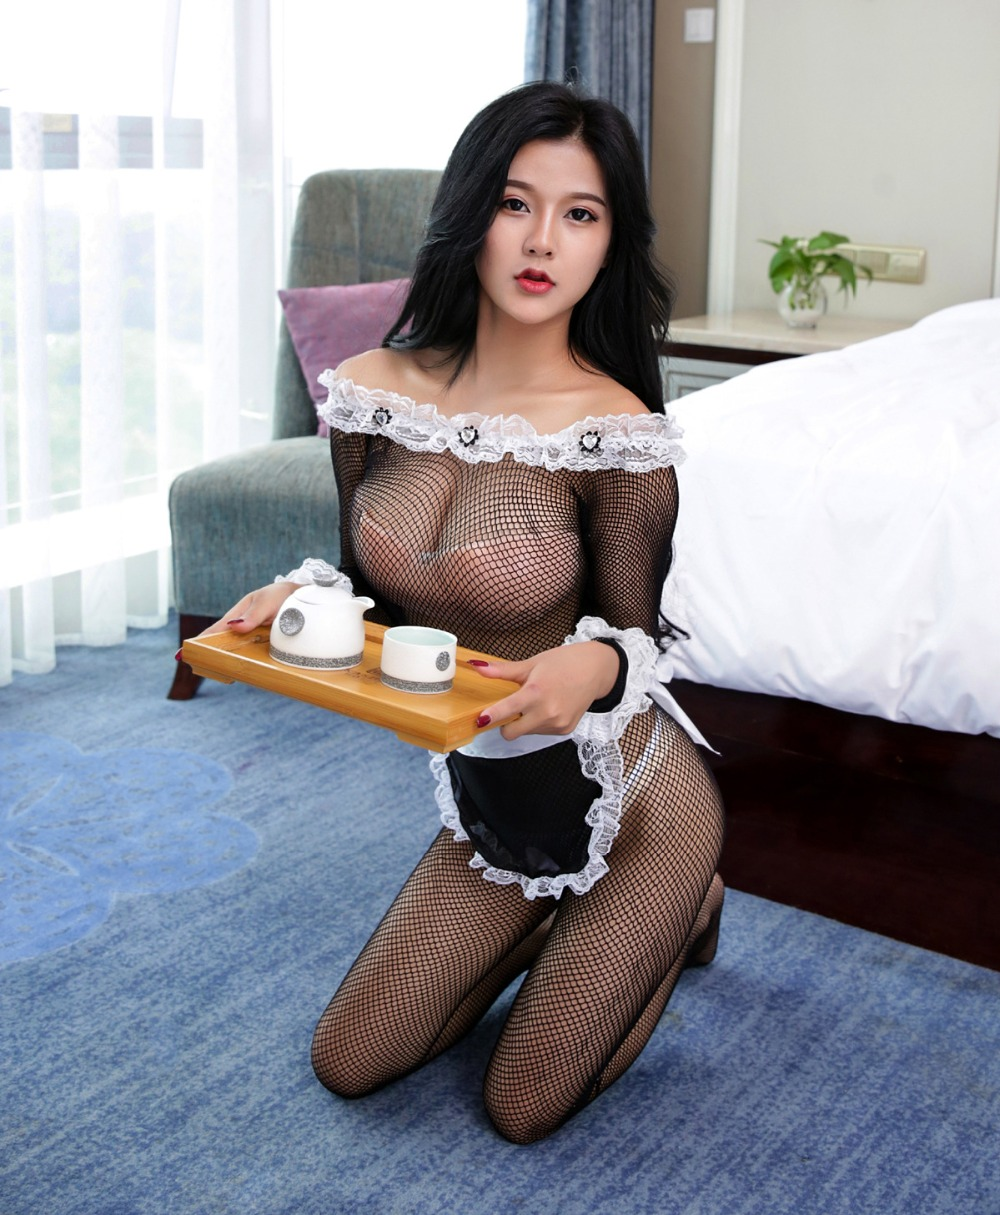 porn girls in french maids outfits